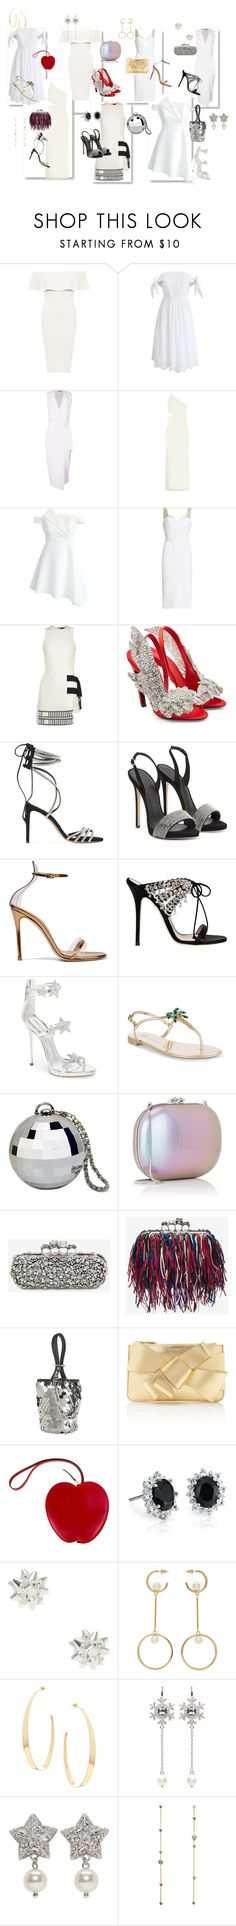 """Happy New Year"" by kety-de-jesus on Polyvore featuring moda, WearAll, Chicwish, Boohoo, Michelle Mason, Victoria Beckham, David Koma, Balenciaga, Alexandre Vauthier e Gianvito Rossi"